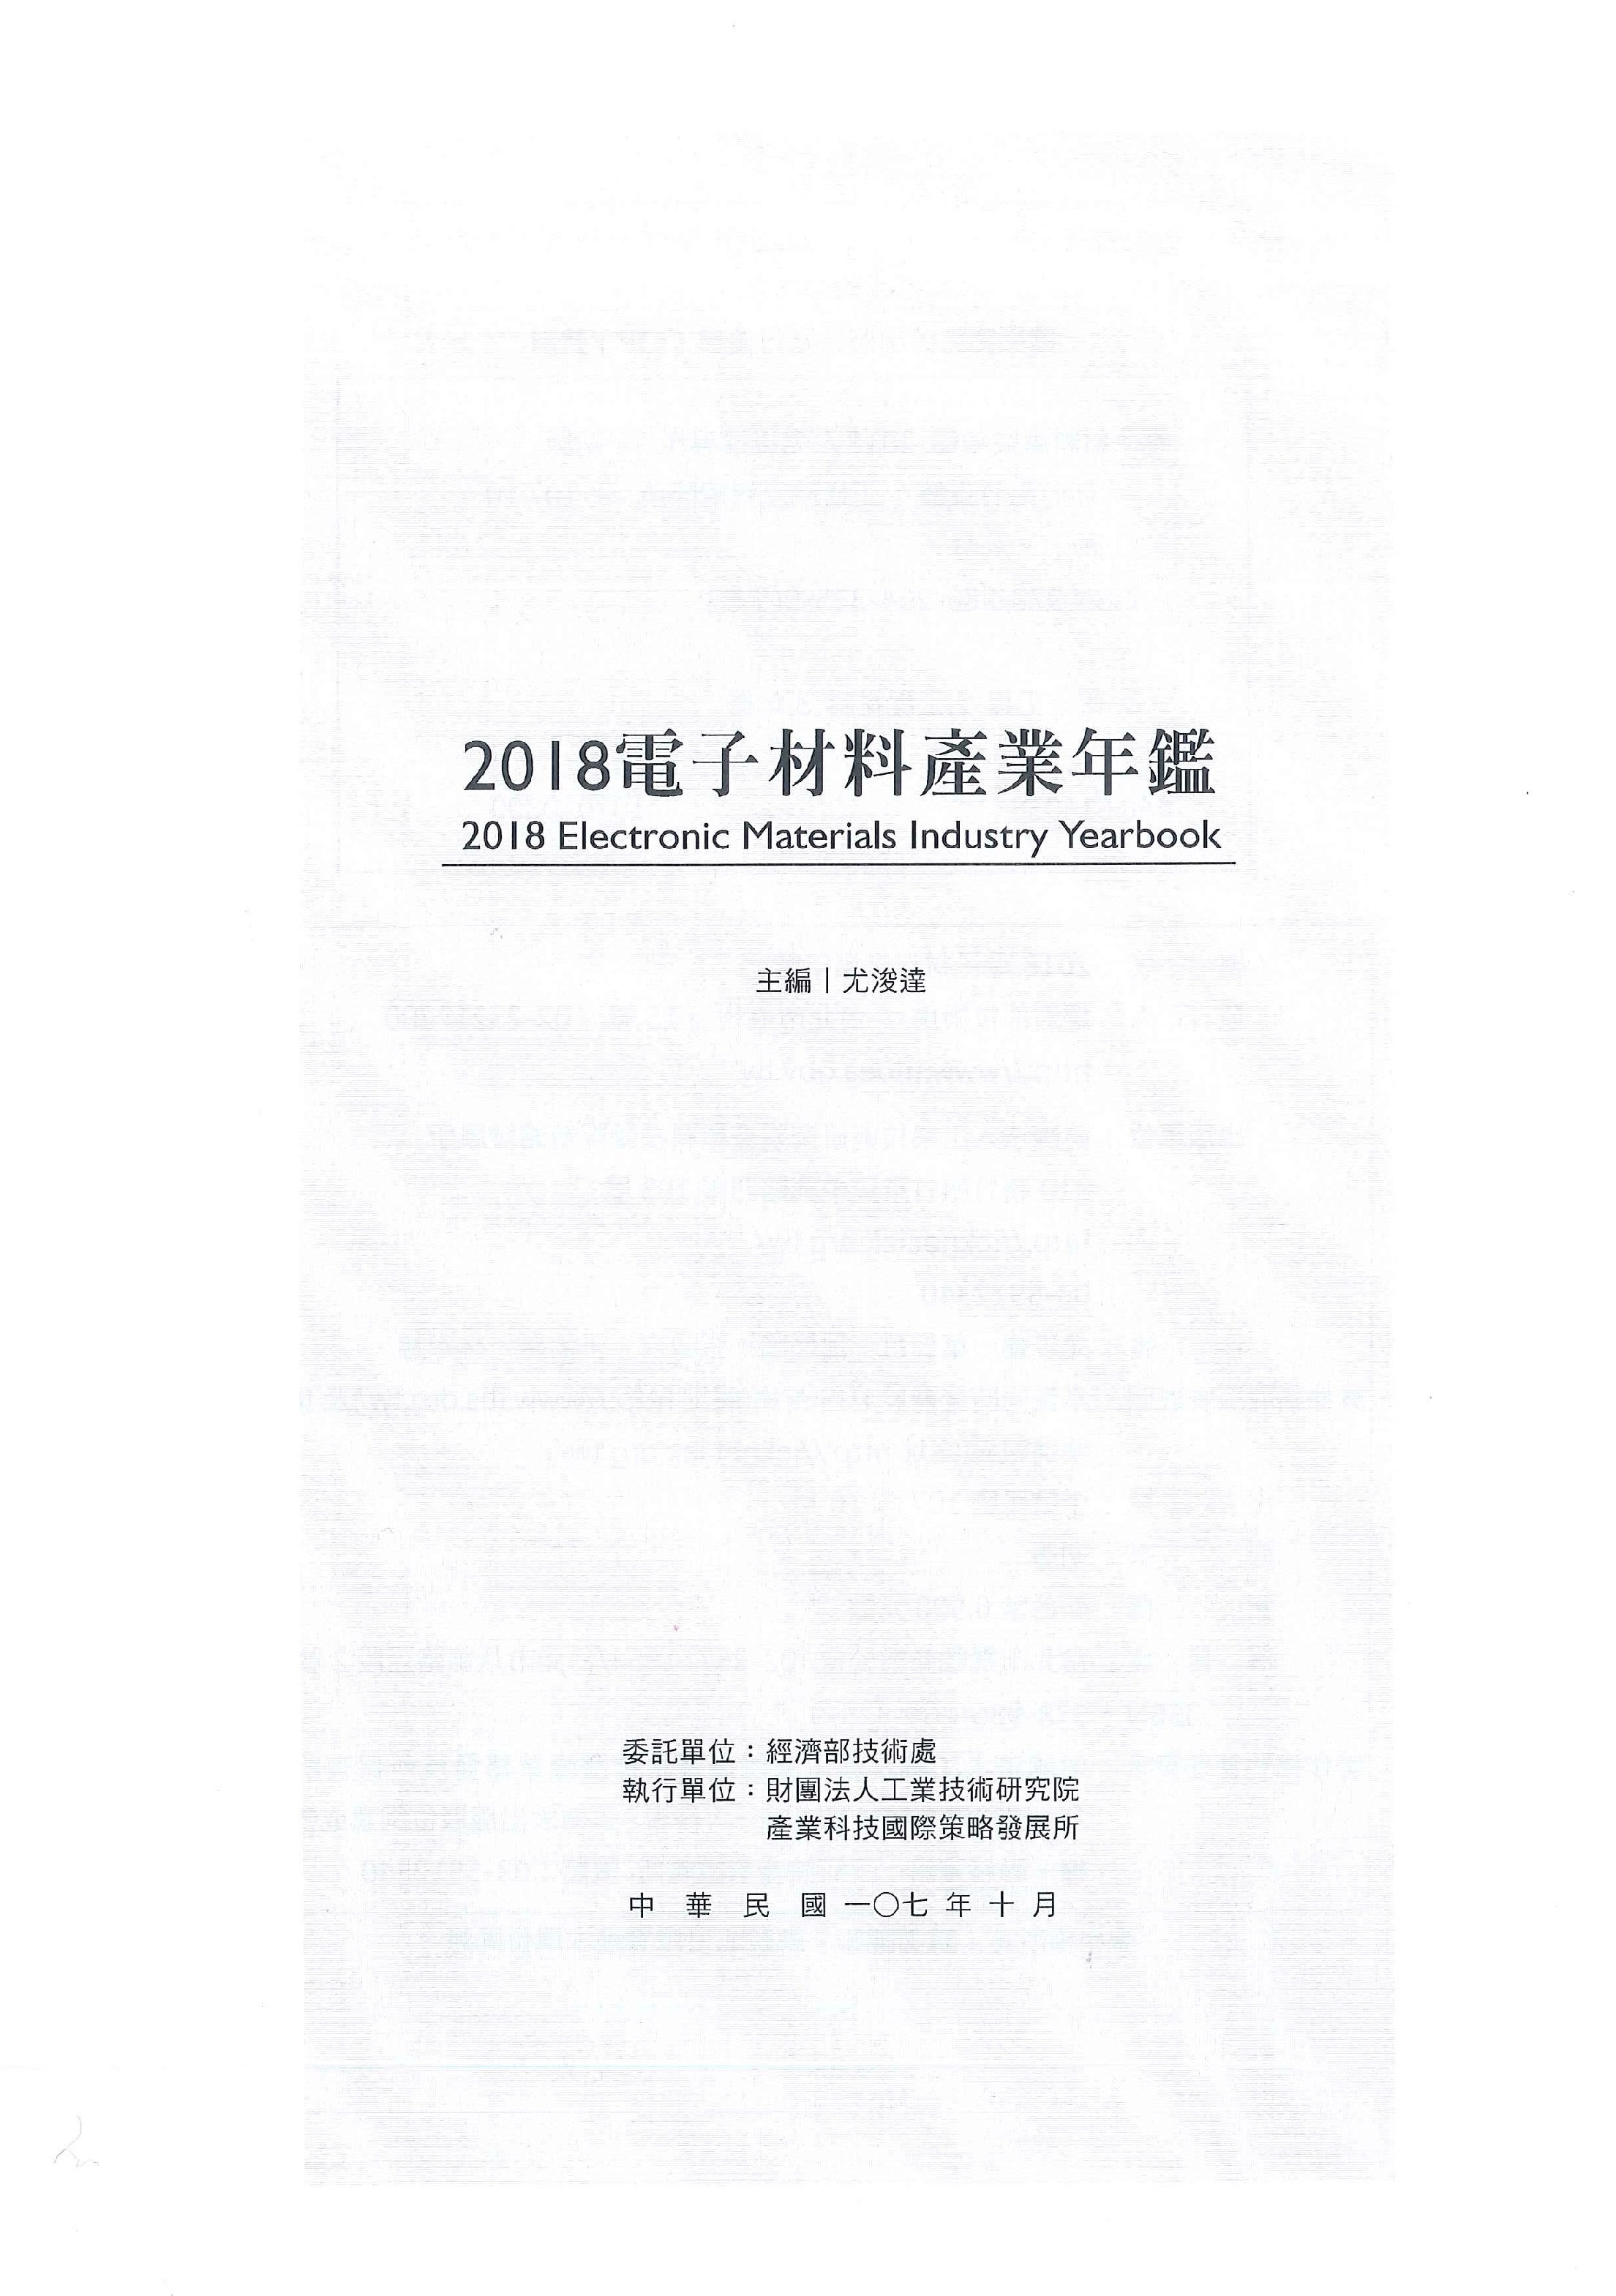 電子材料產業年鑑=Electronic materials industry yearbook